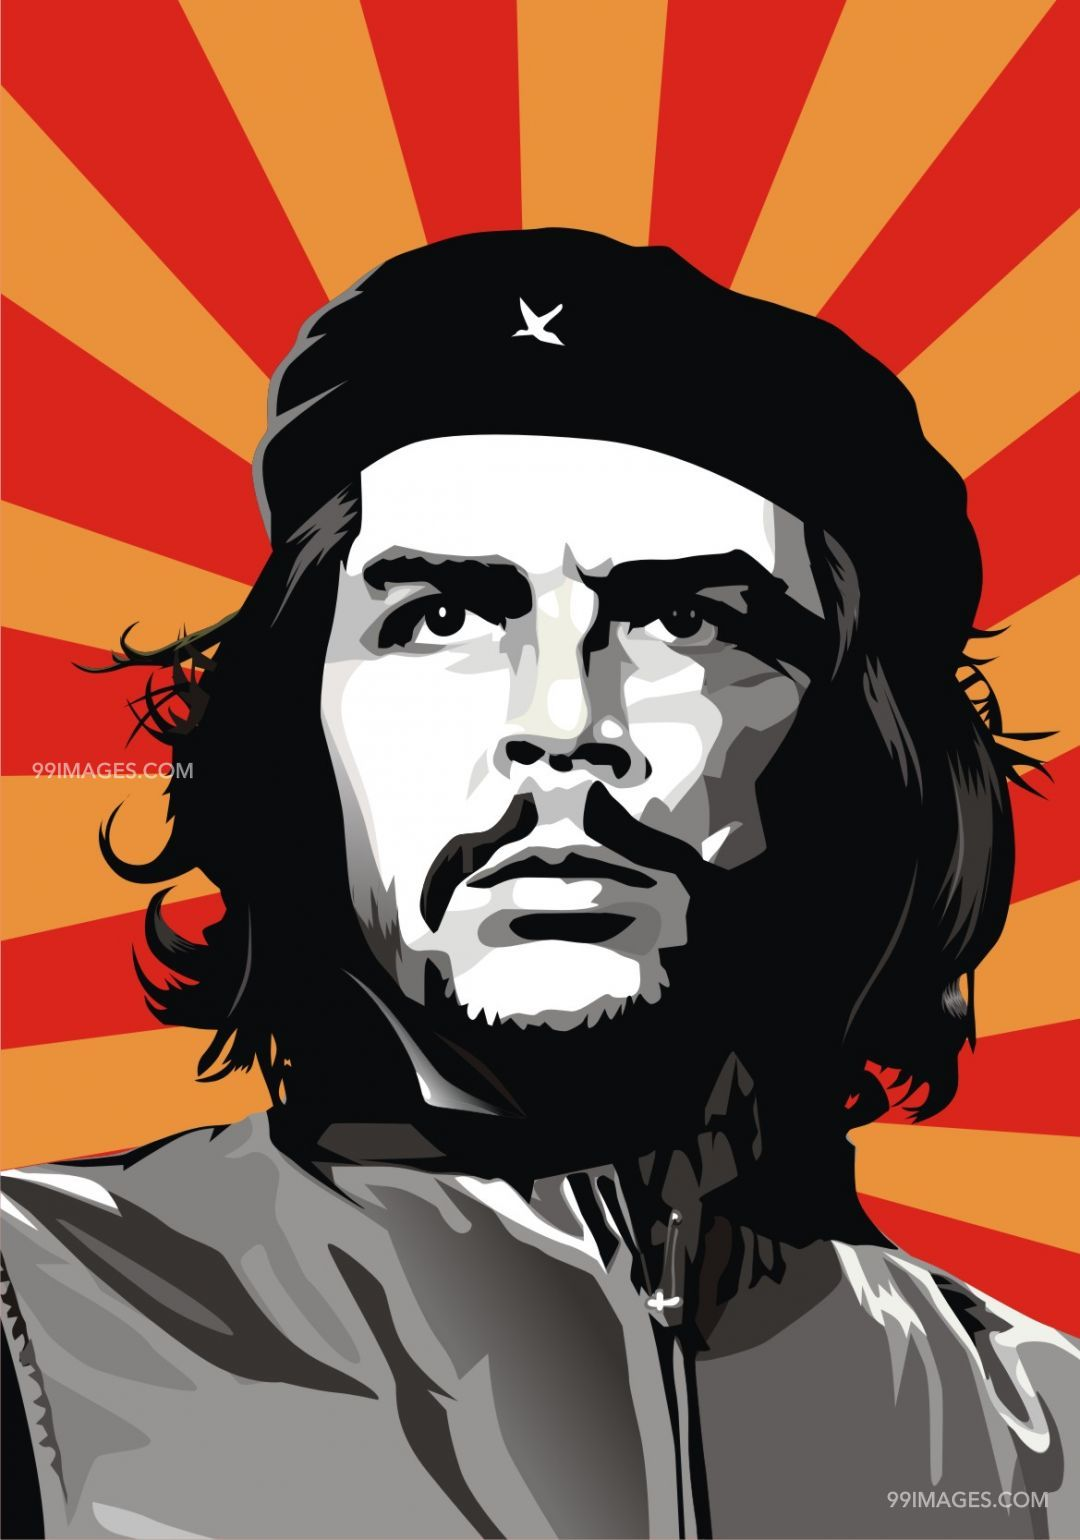 Che Guevara Wallpapers HD Best HD Photos (1080p) (che guevara, che guevara wallpapers hd, che guevara images) (1179) - Che Guevara Wallpapers HD